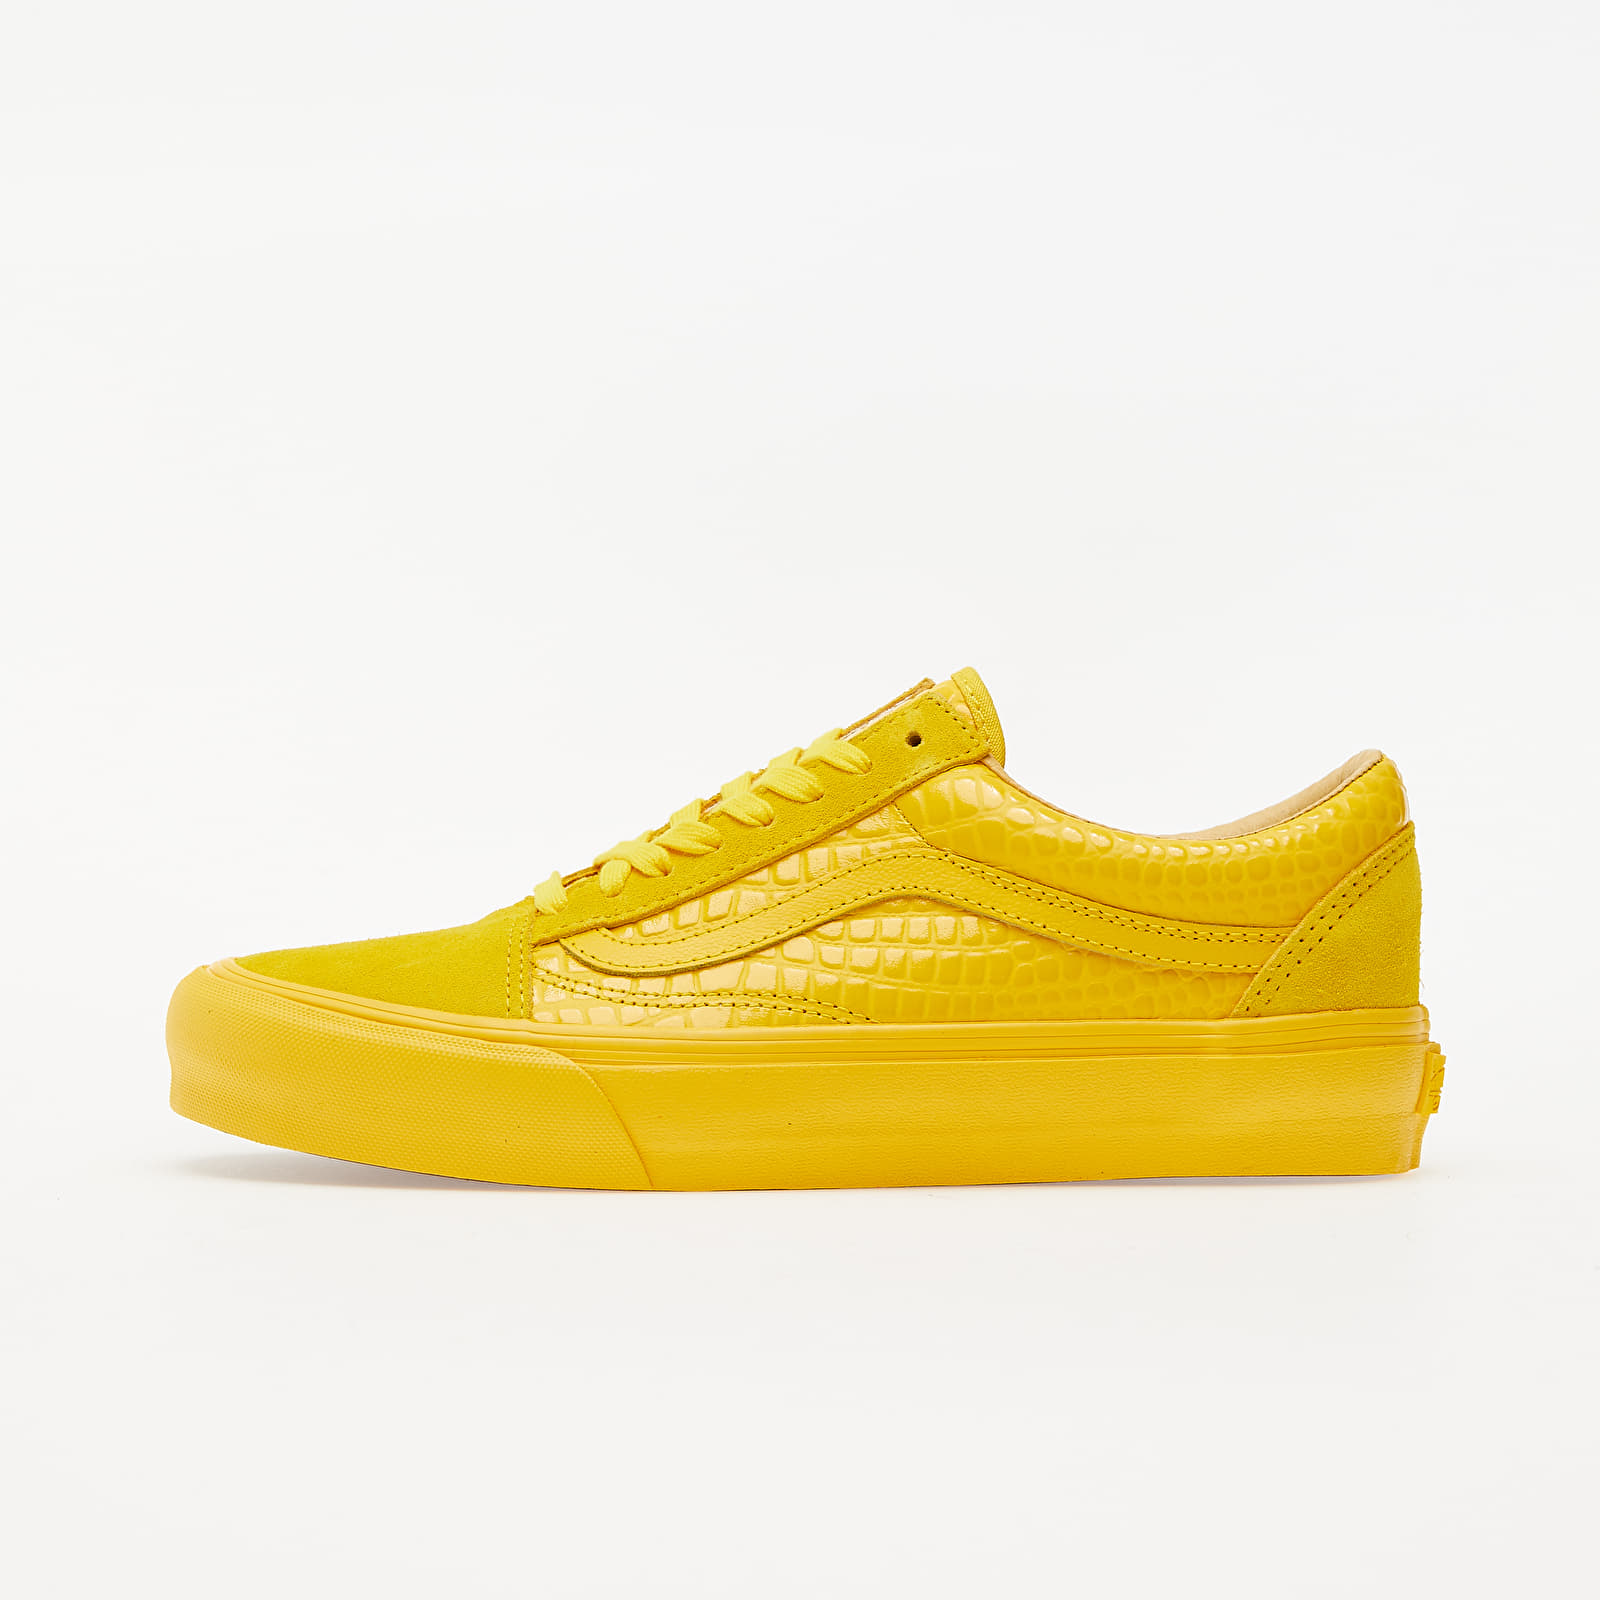 Zapatillas Hombre Vans Old Skool VLT LX (Croc Skin) Lemon Chrome